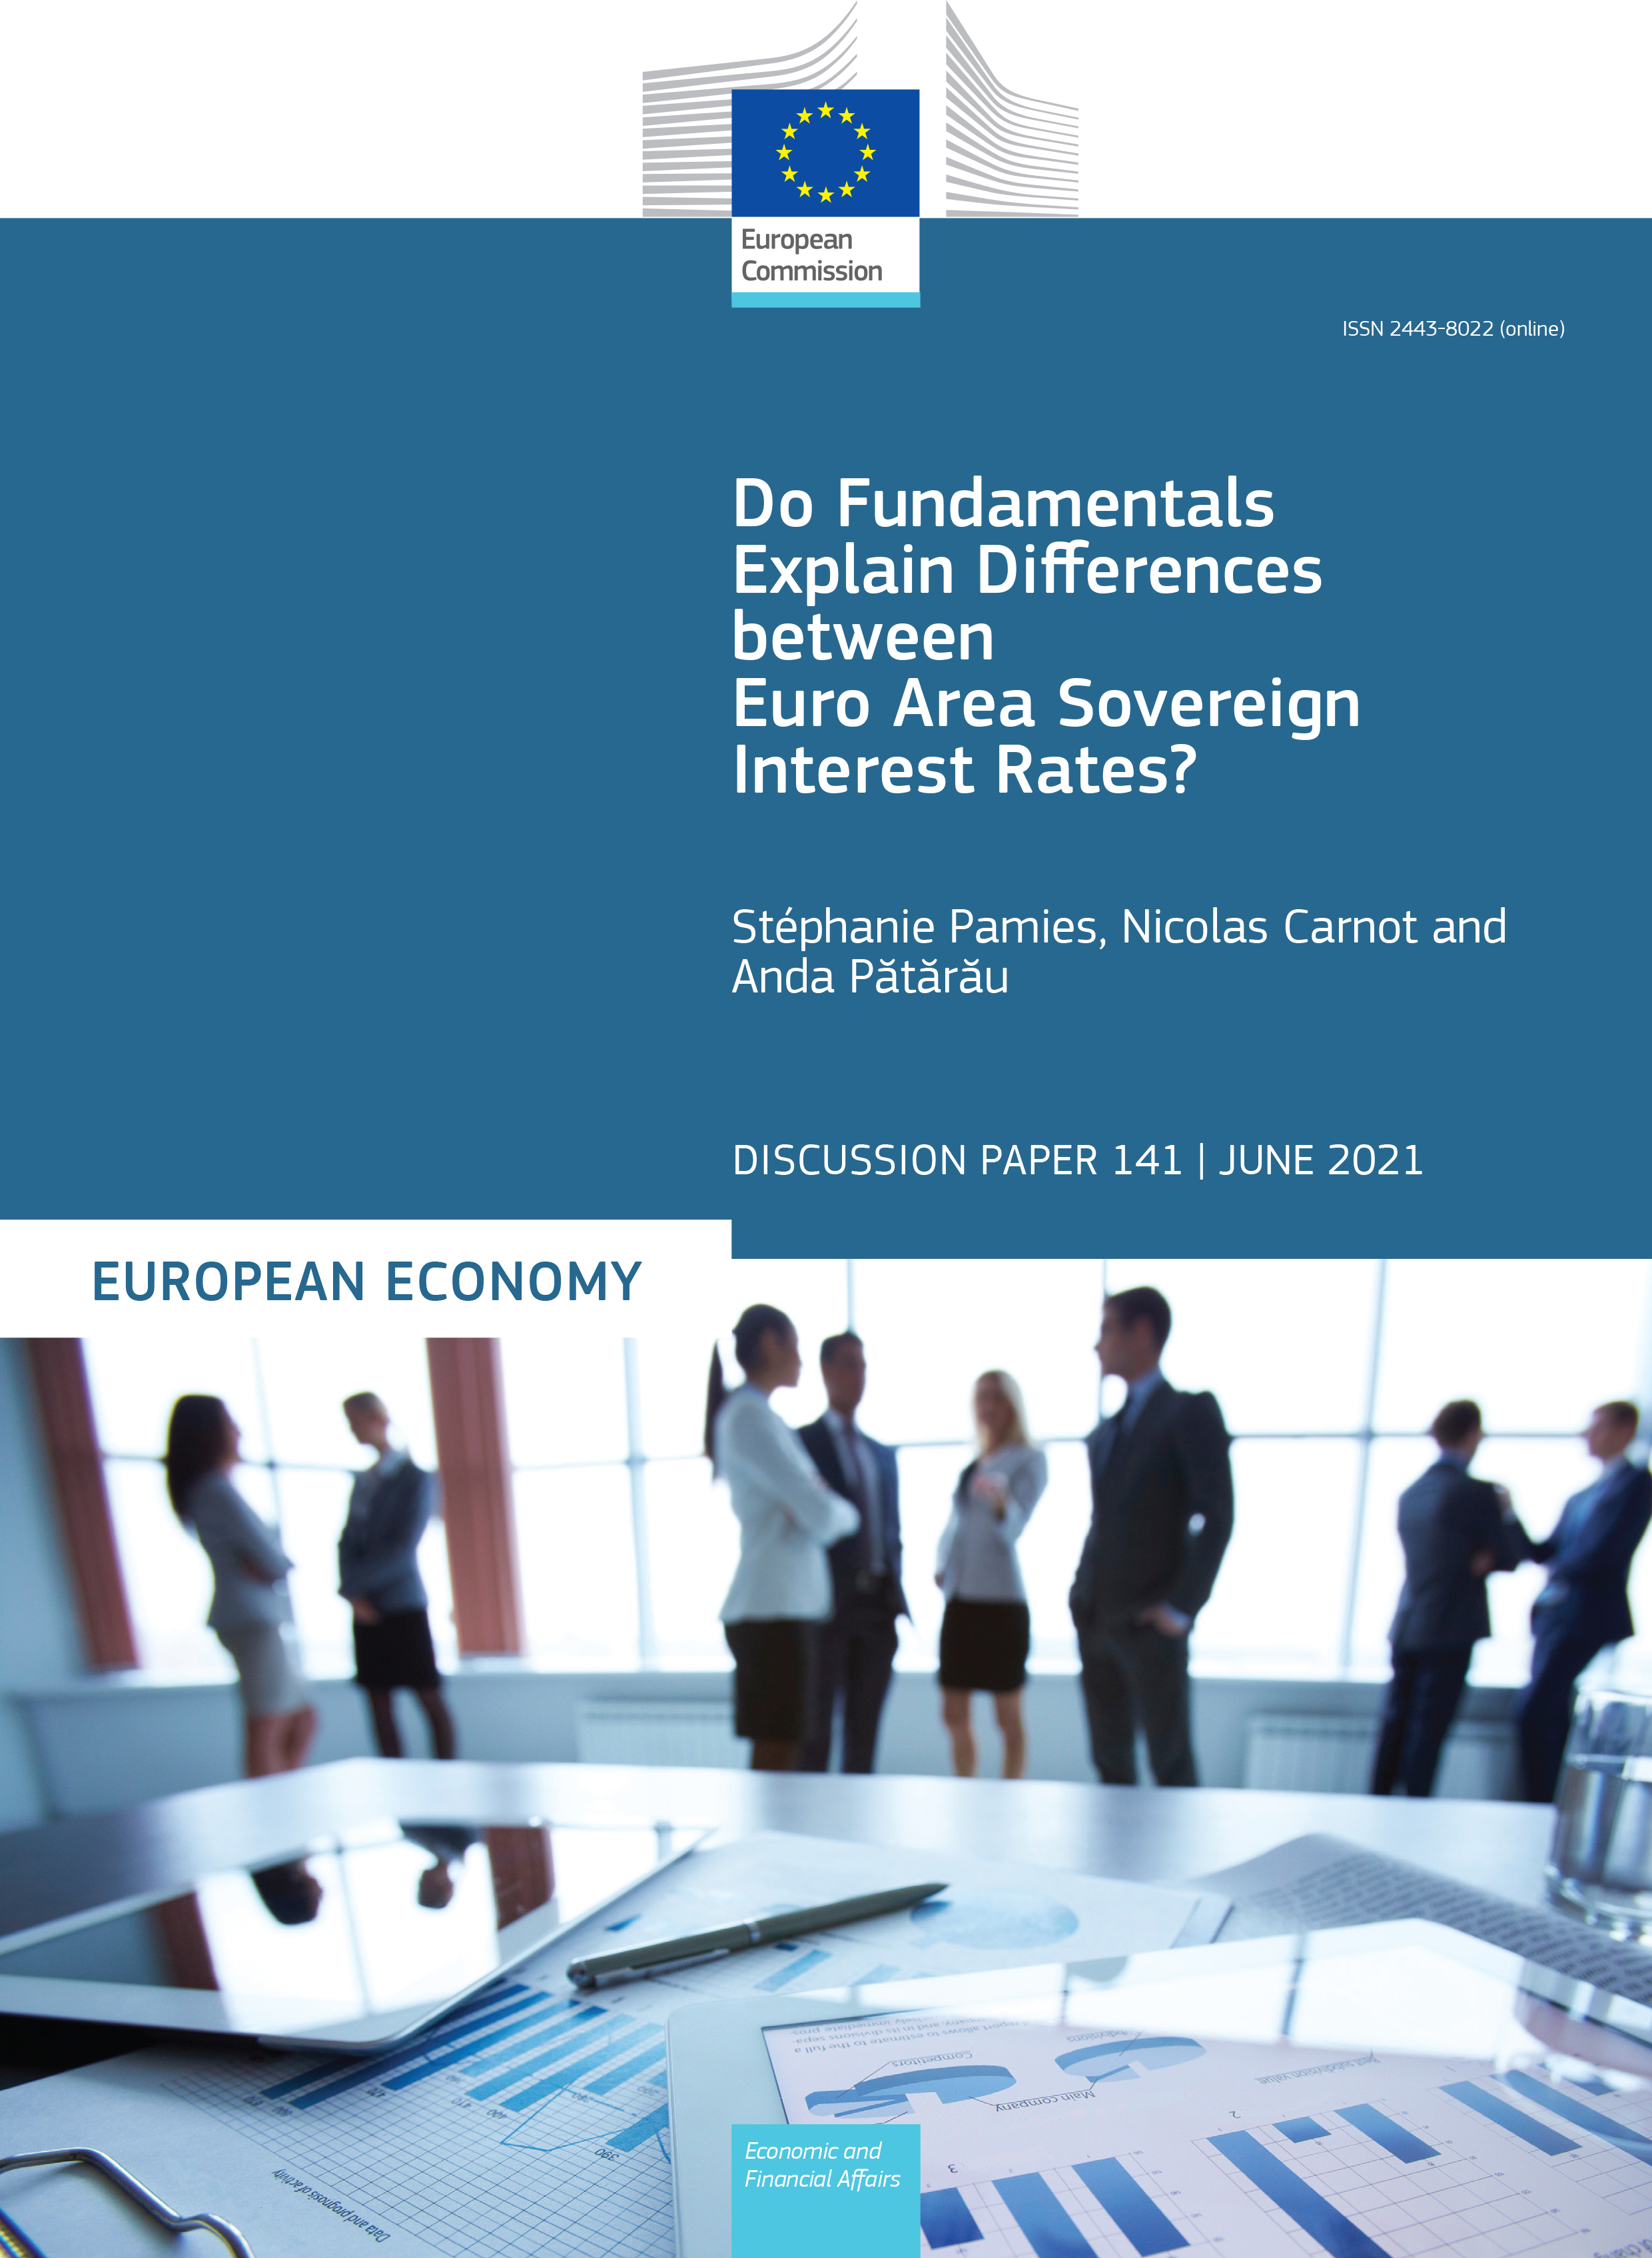 Do Fundamentals Explain Differences between Euro Area Sovereign Interest Rates?